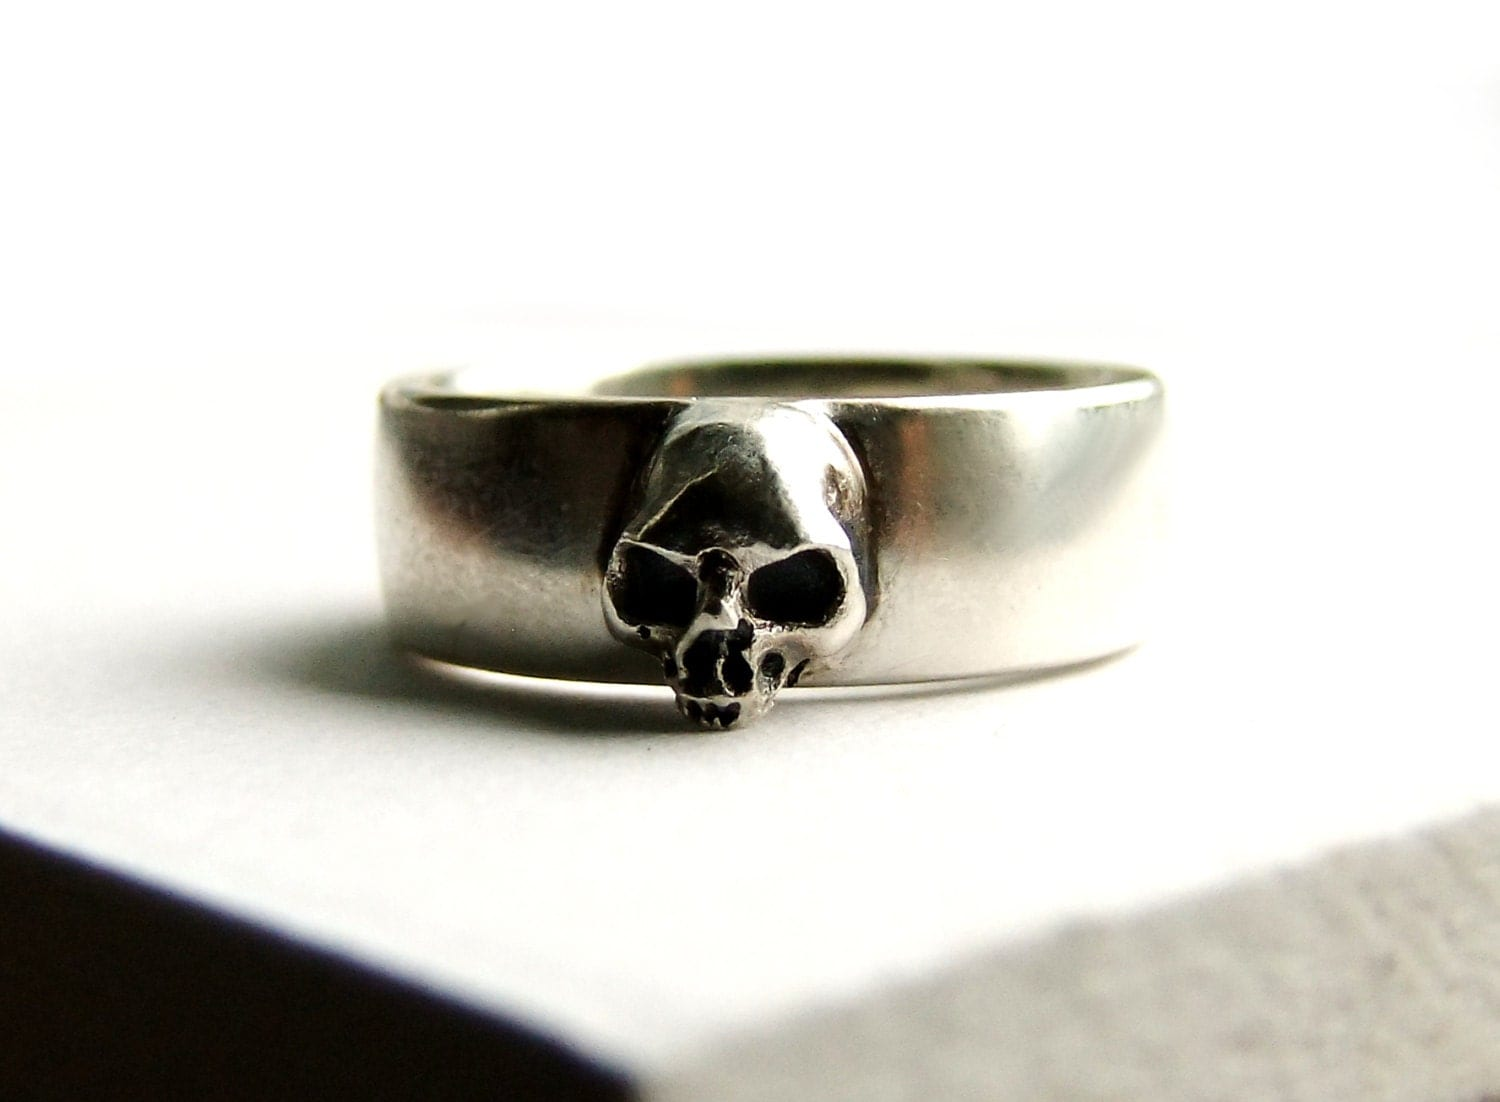 skull wedding ring grooms skull ring mens skull wedding rings Skull Wedding Ring Grooms Skull Ring Goth Groom Ring Skull Wedding Pair Small Mens Skull Ring Psychobilly Wedding Band Wedding Set All Sizes